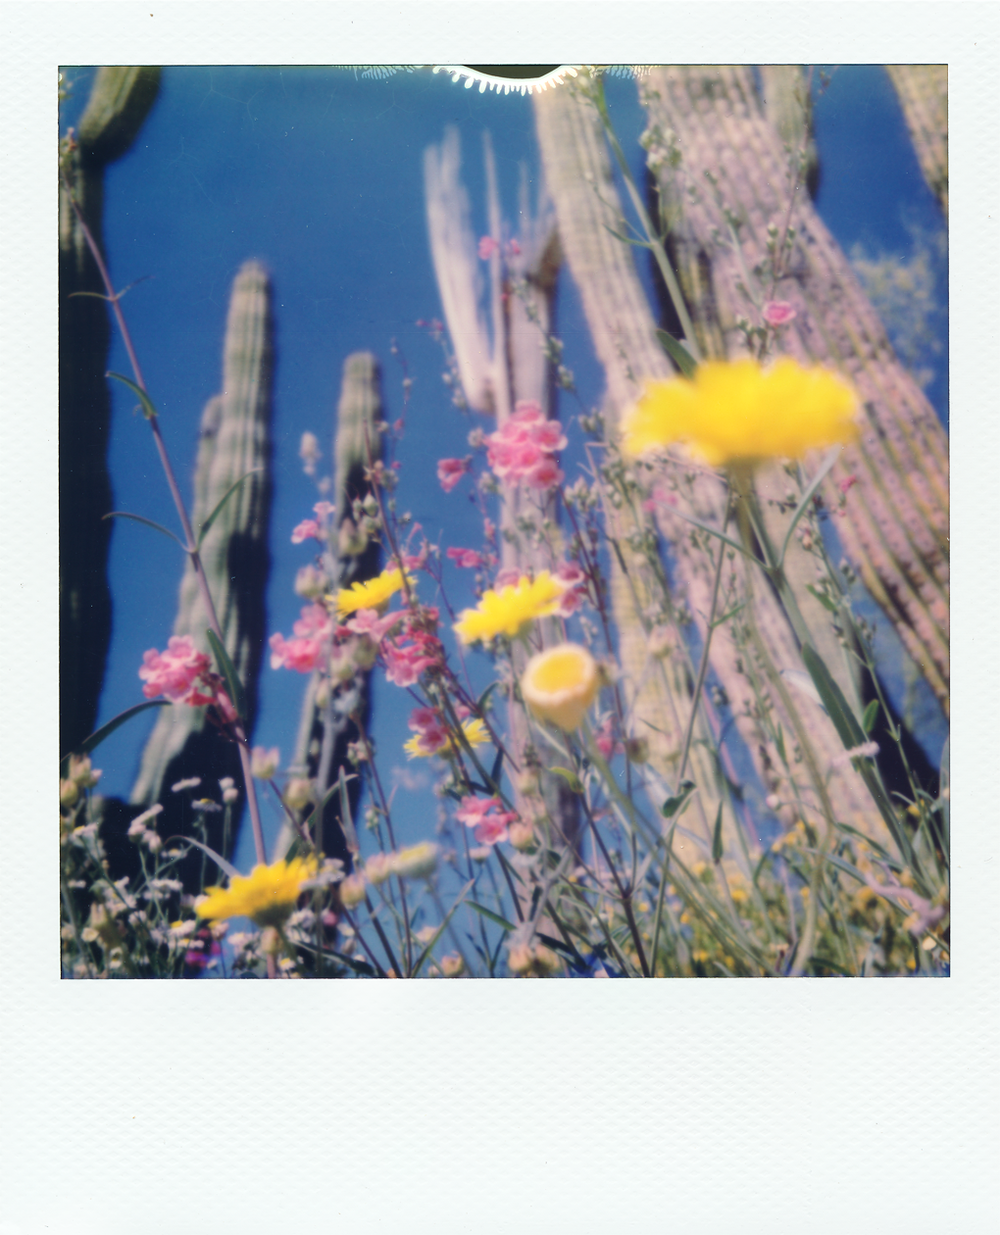 Desert Flowers  comprises of over 150 instant photographs taken with an SX70 over the course of a month long roadtrip through the Sonoran, Chihuahuan, and Mojave desert.